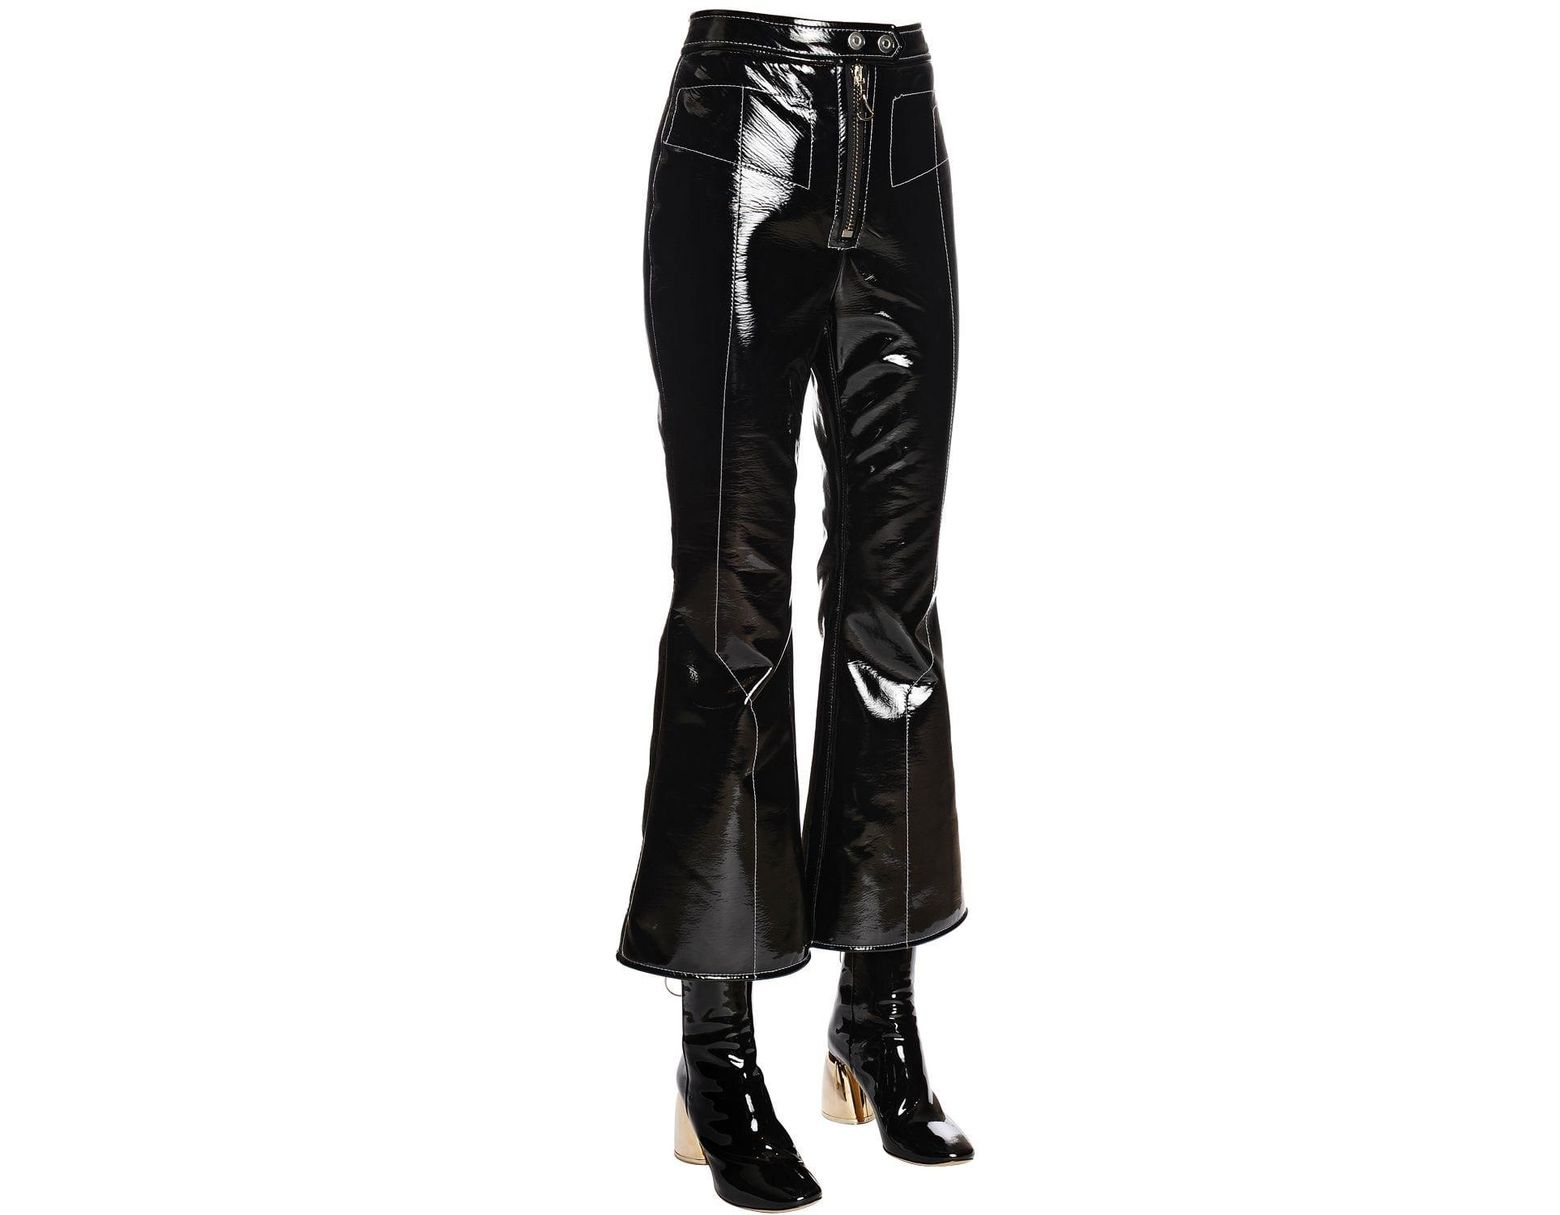 aa66e2f75c53 Ellery Stretch Faux Patent Leather Pants in Black - Save 17% - Lyst